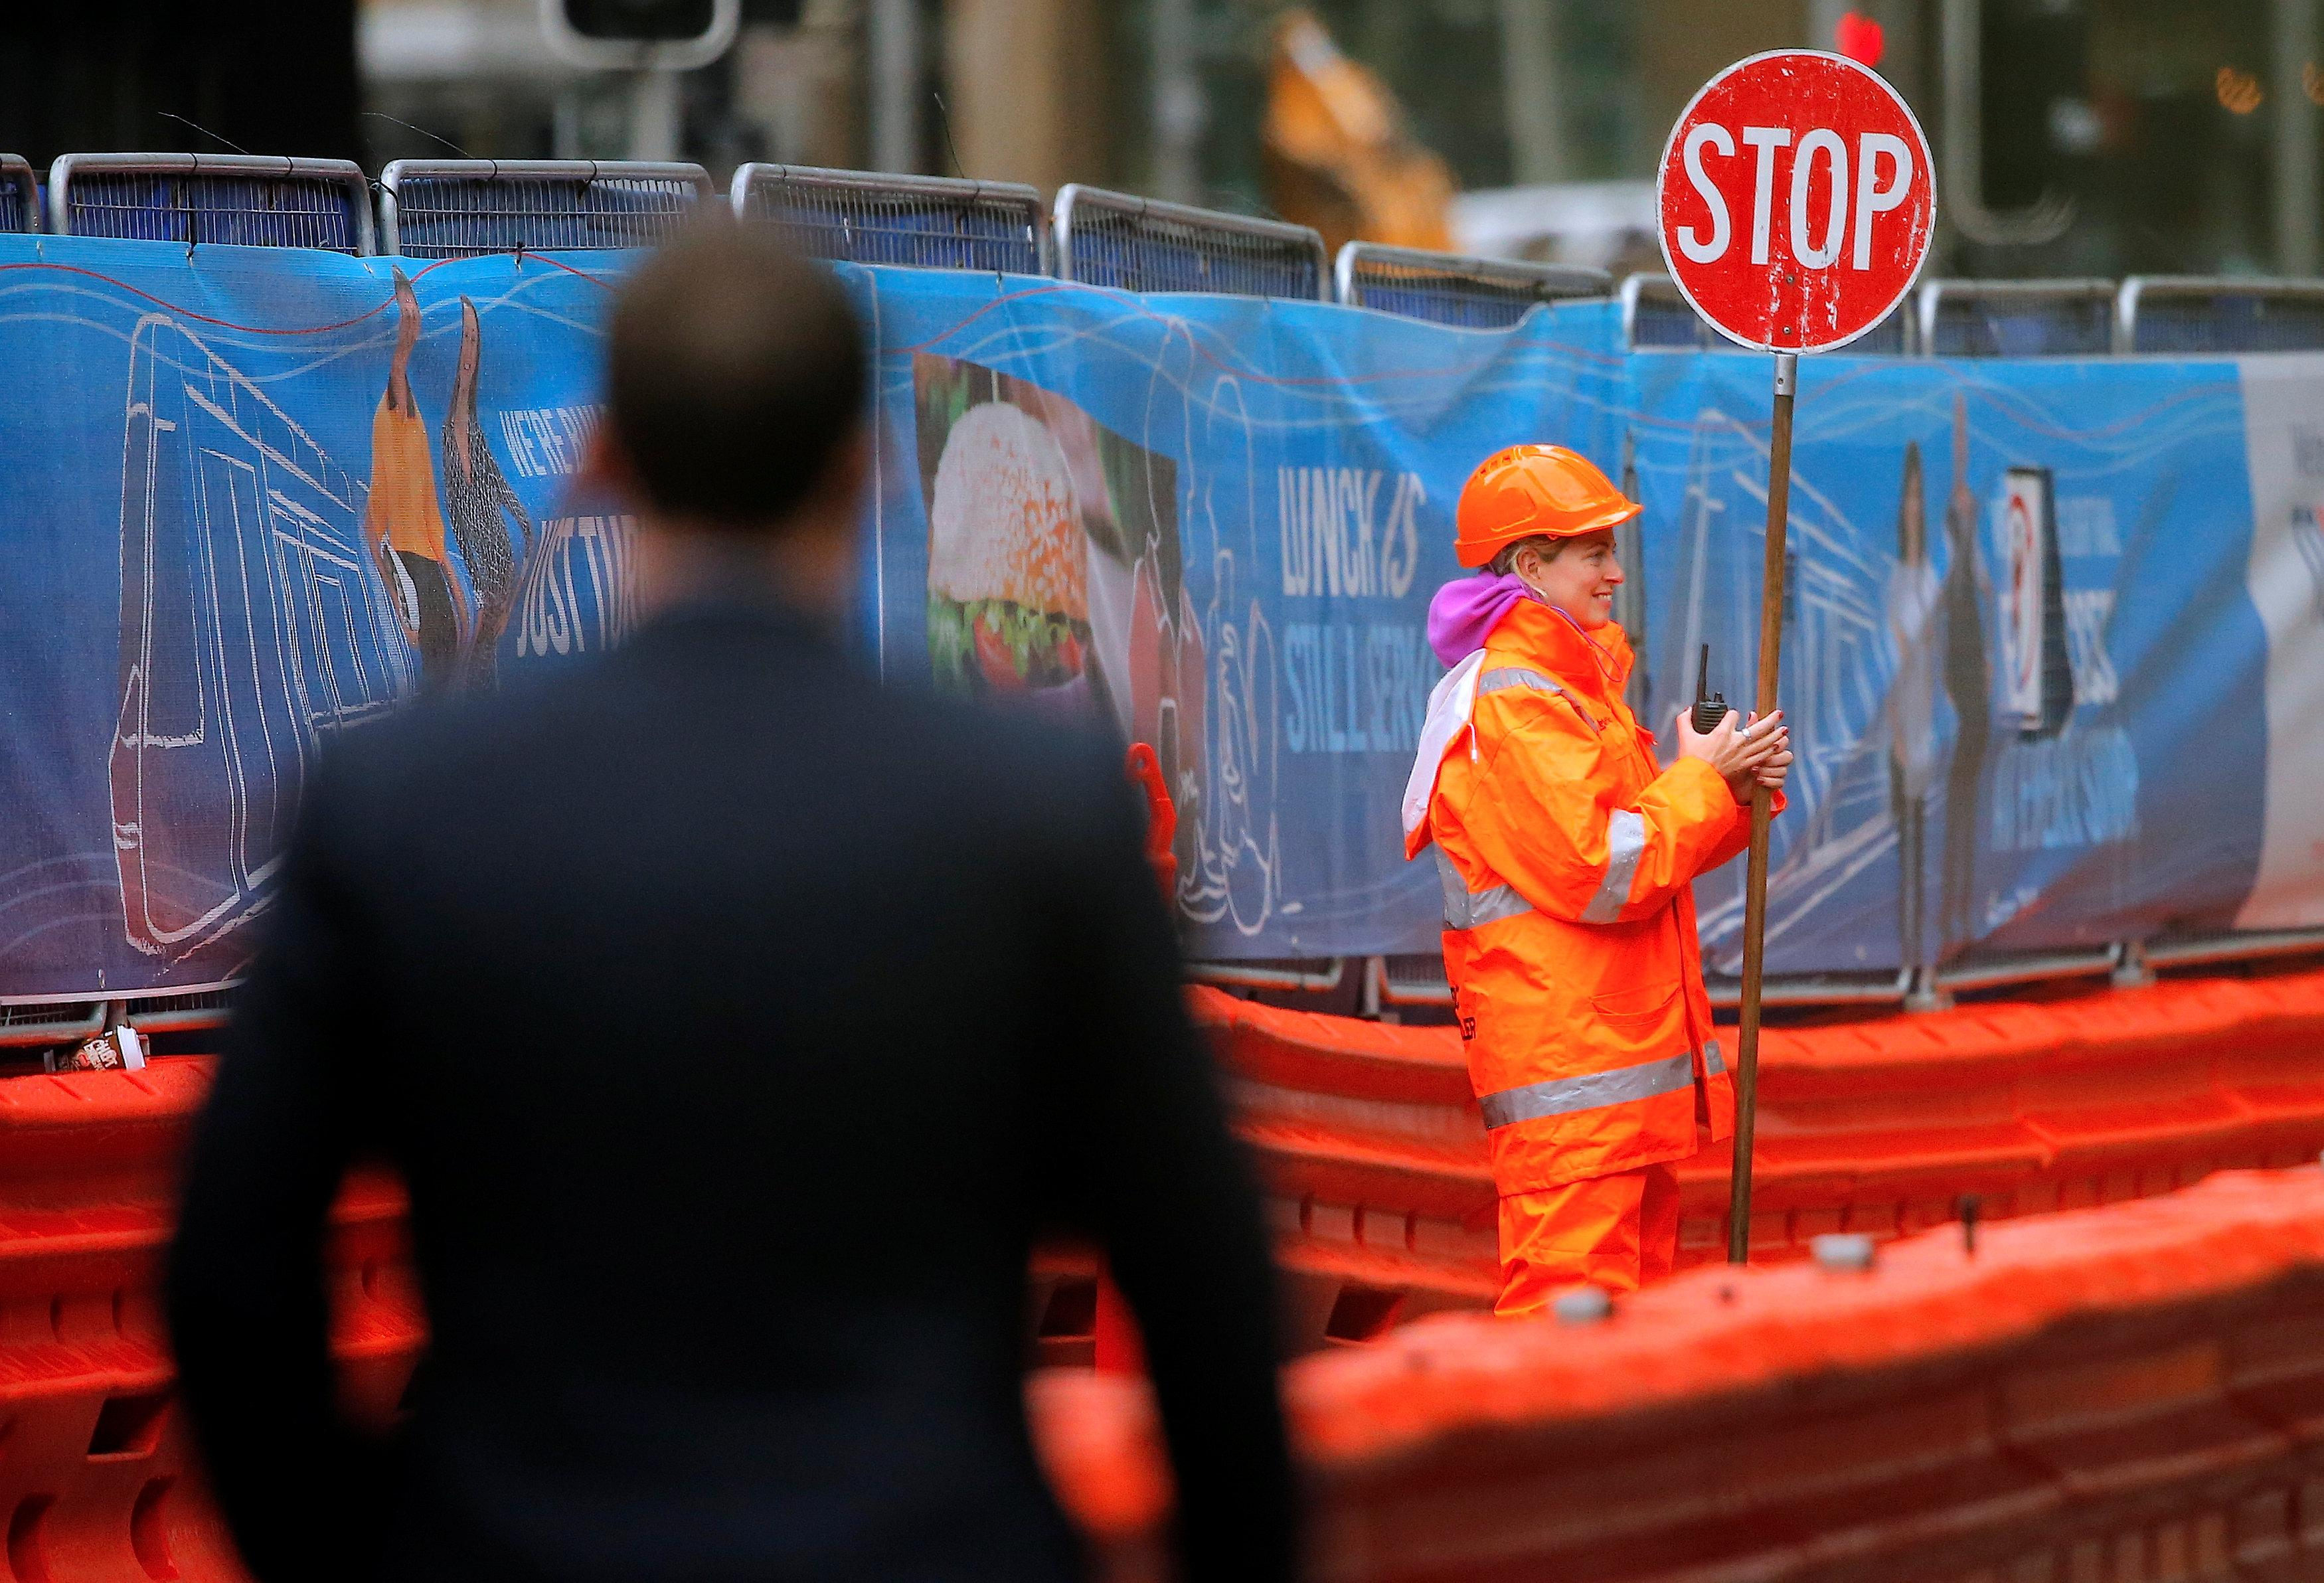 Australia economy ties record for longest expansion, looking